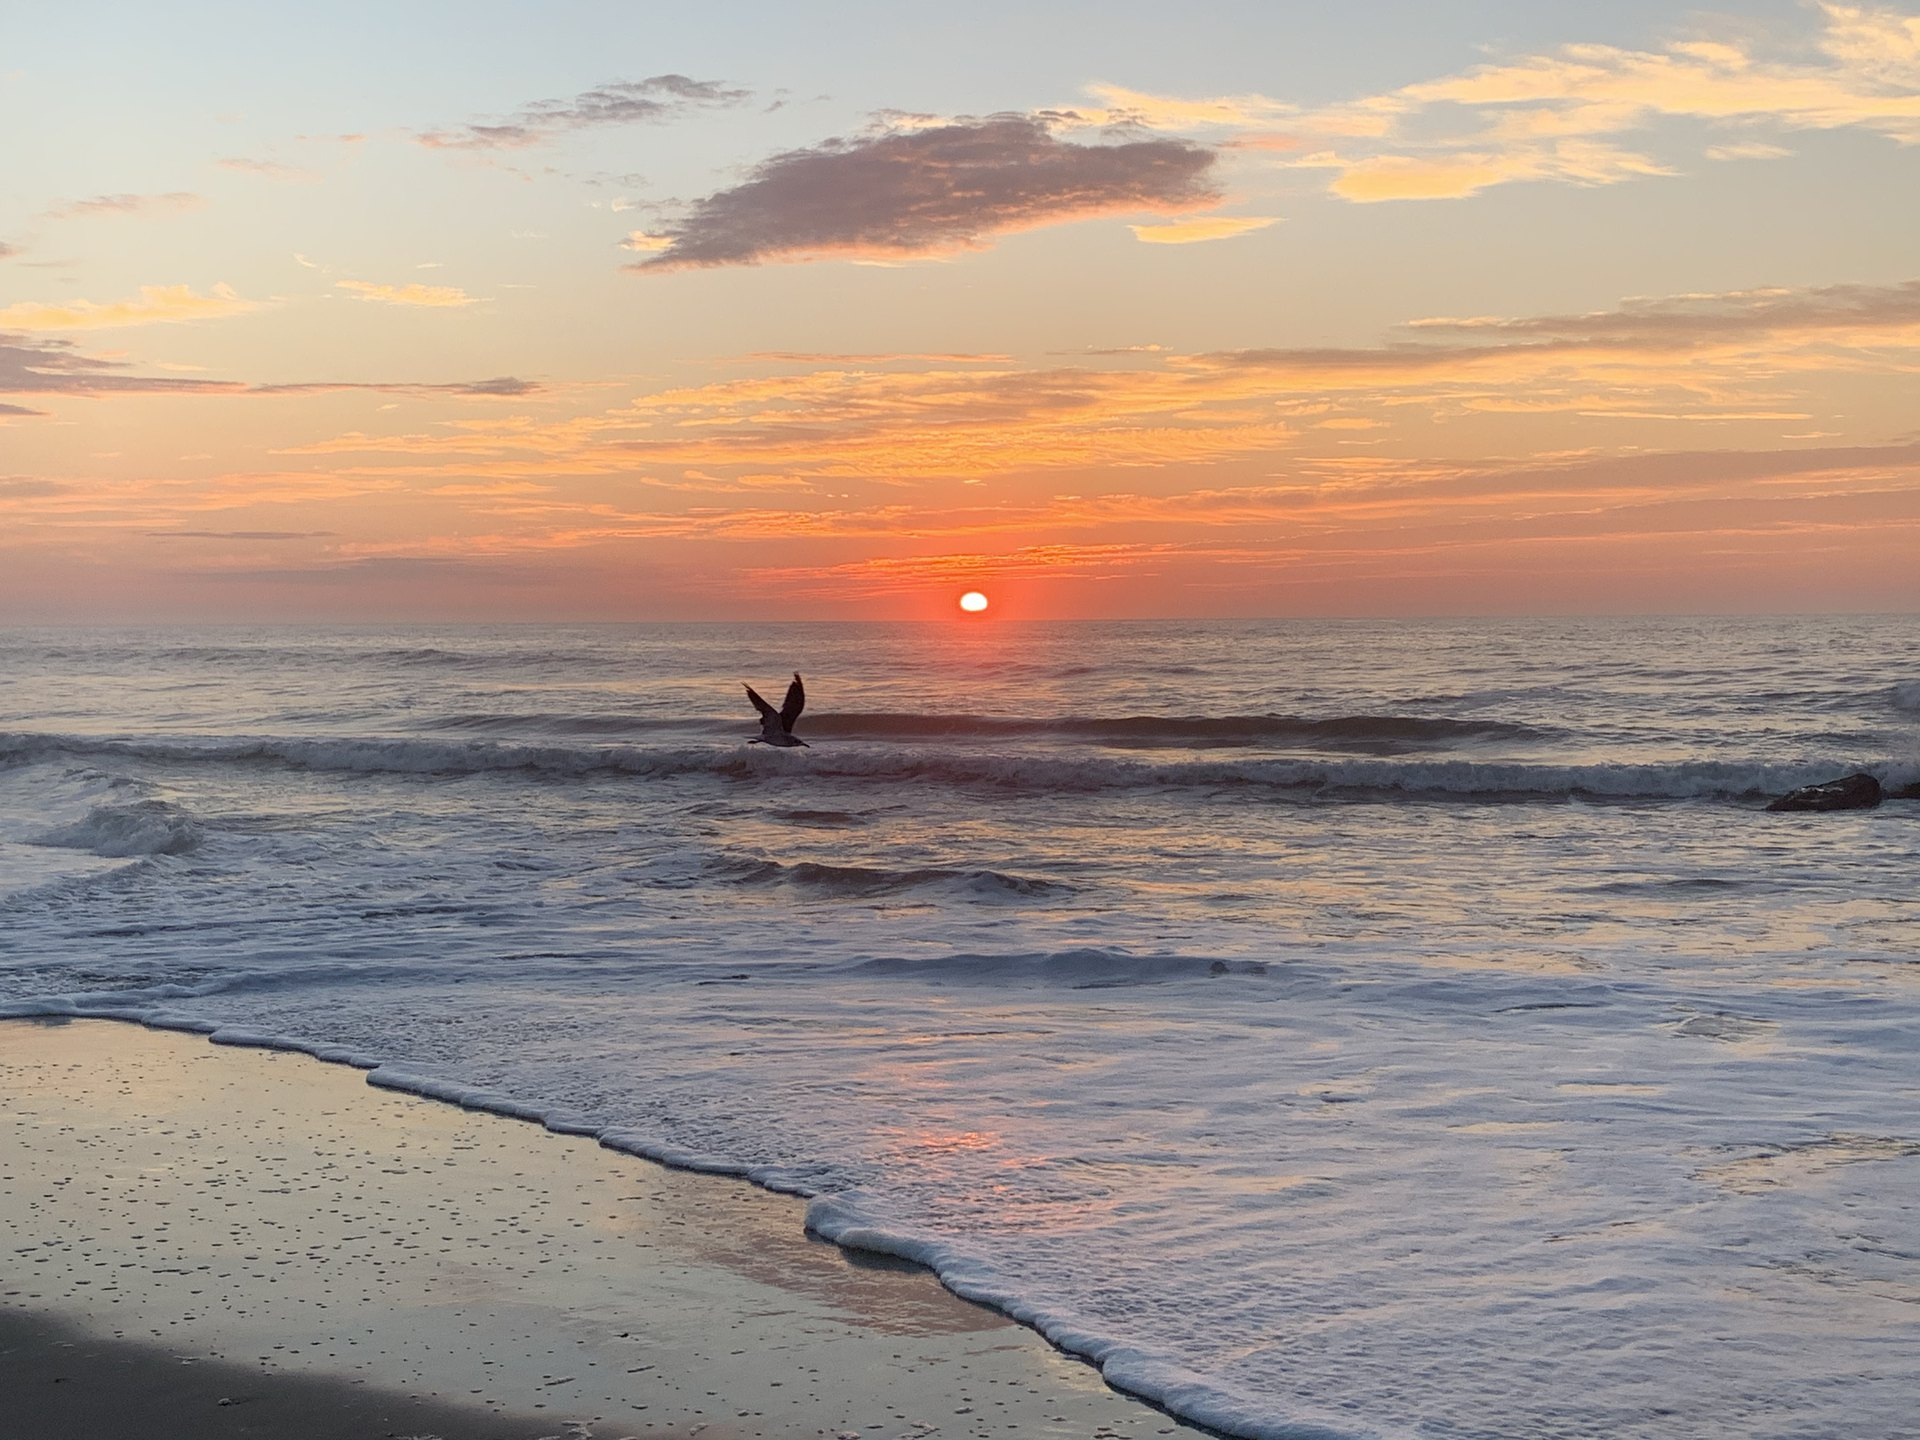 2 John NASB.  A seagull glides just above the waves at sunrise on the ocean.